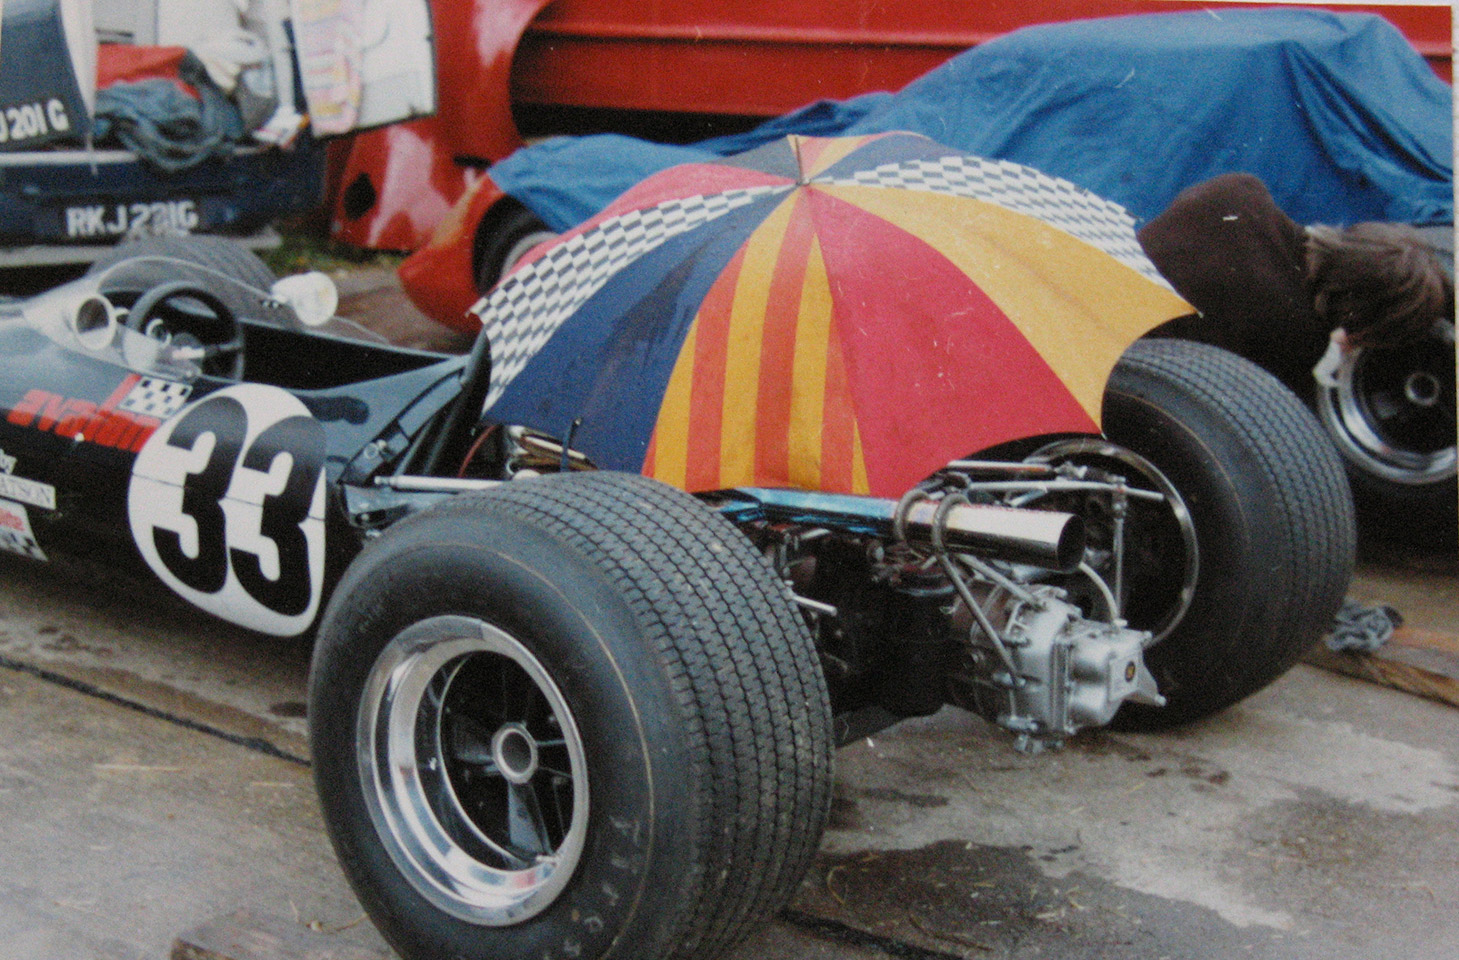 The Chevron B9 sheltering under a brollie!